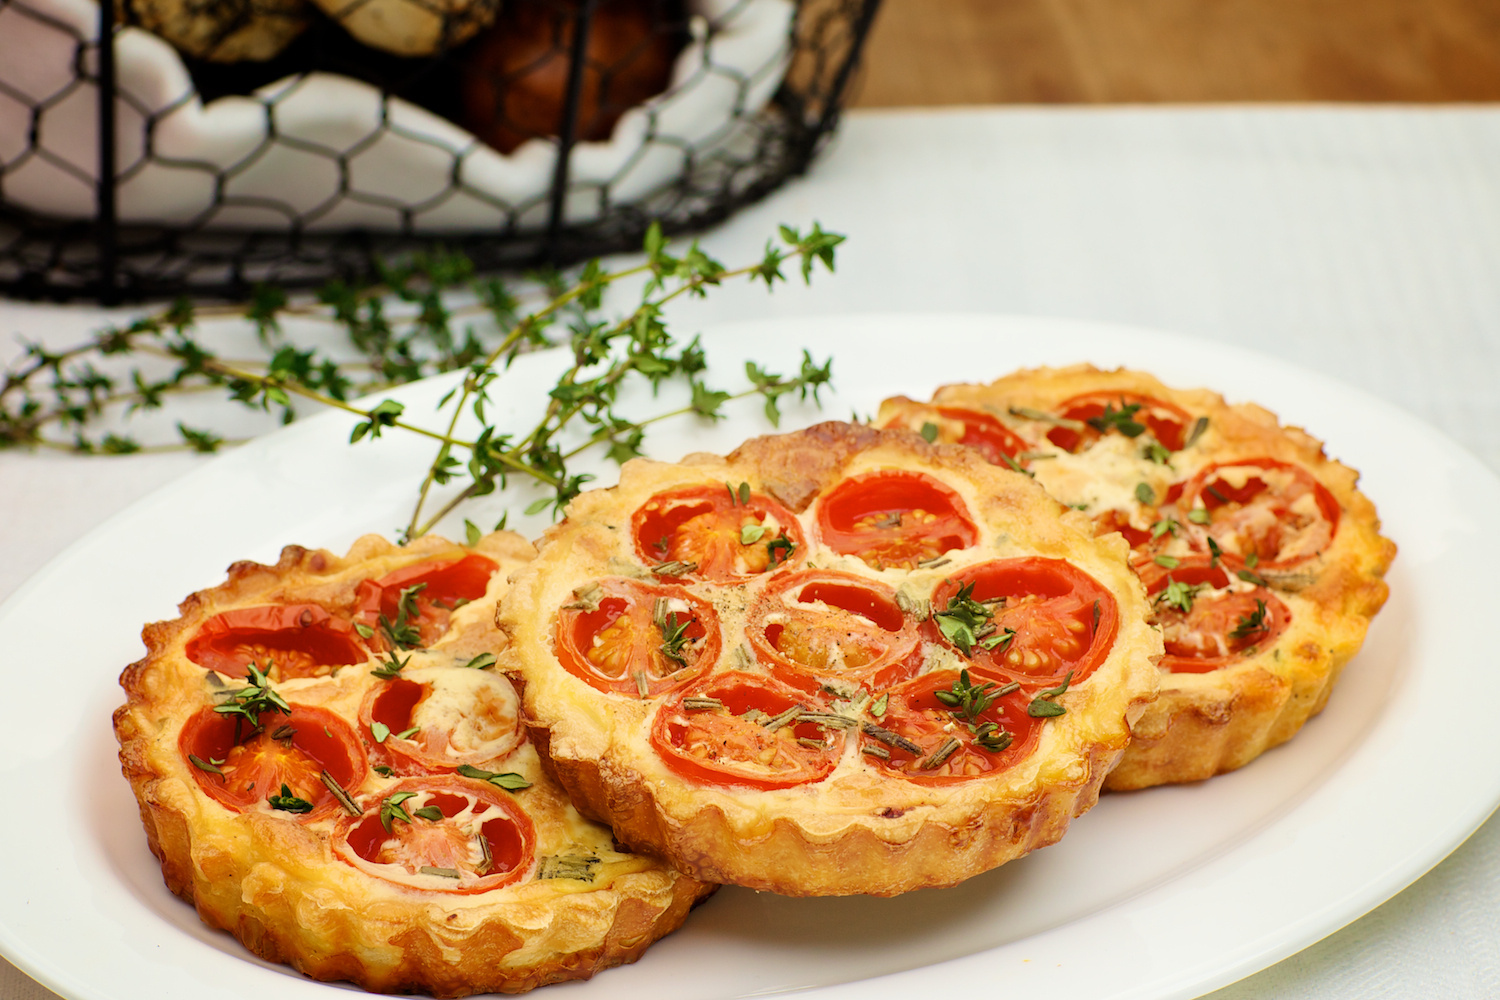 2009-12-12_Balzac_Food_23_tomato_tart_alternate_version2_alienskin.jpg